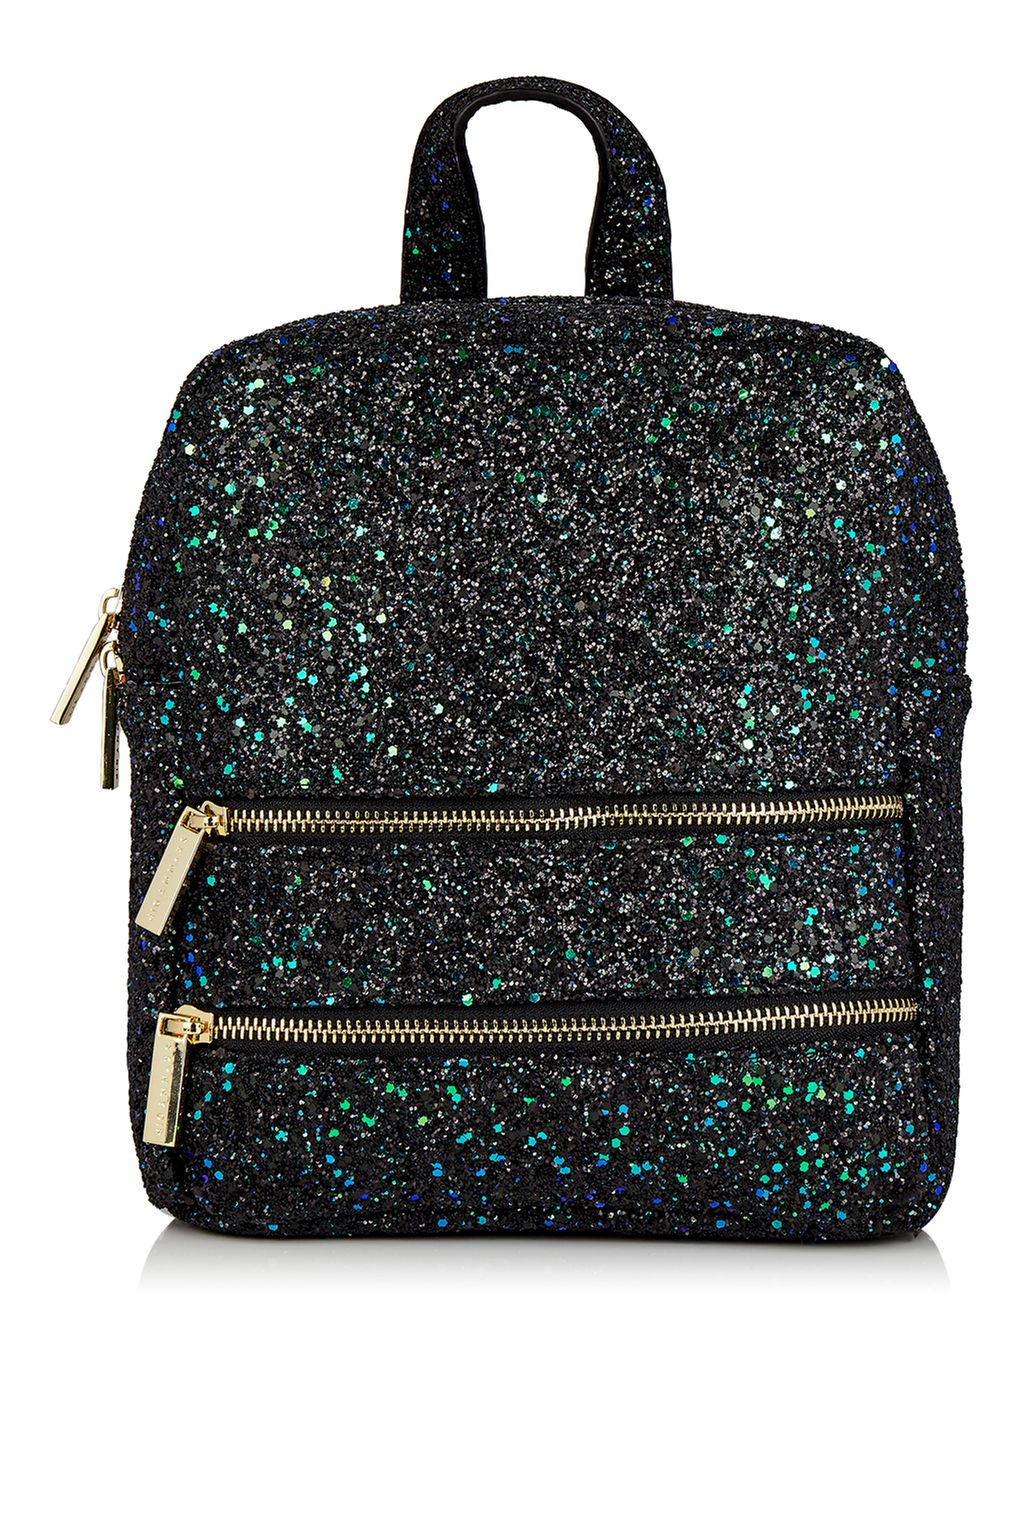 Topshop Glitter Backpack